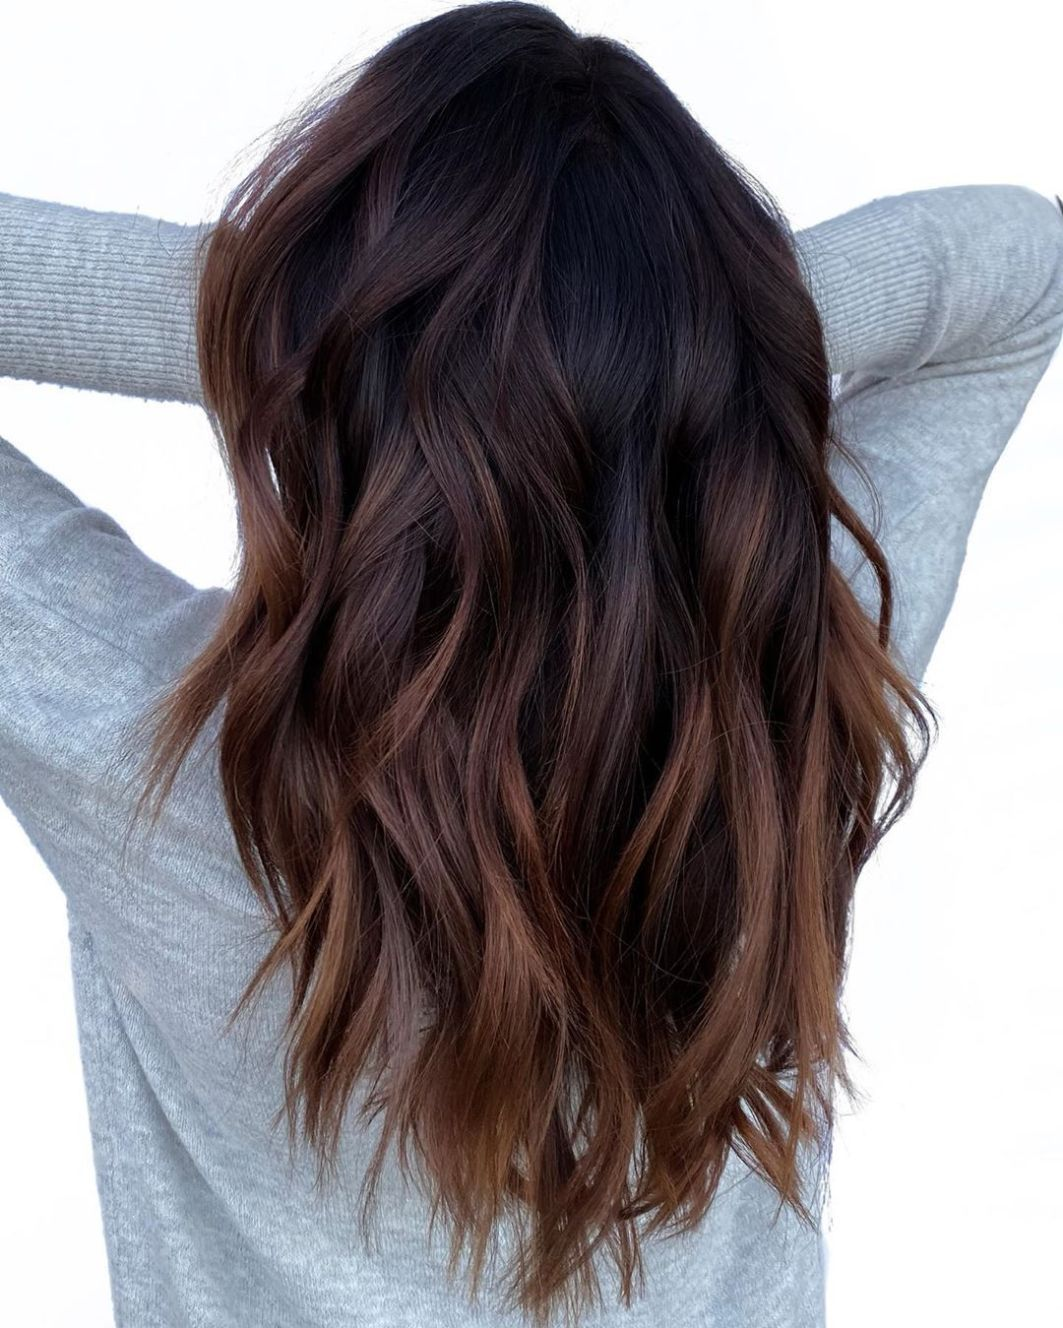 40 Most Popular Ombre Hair Ideas for 2020 – Hair Adviser